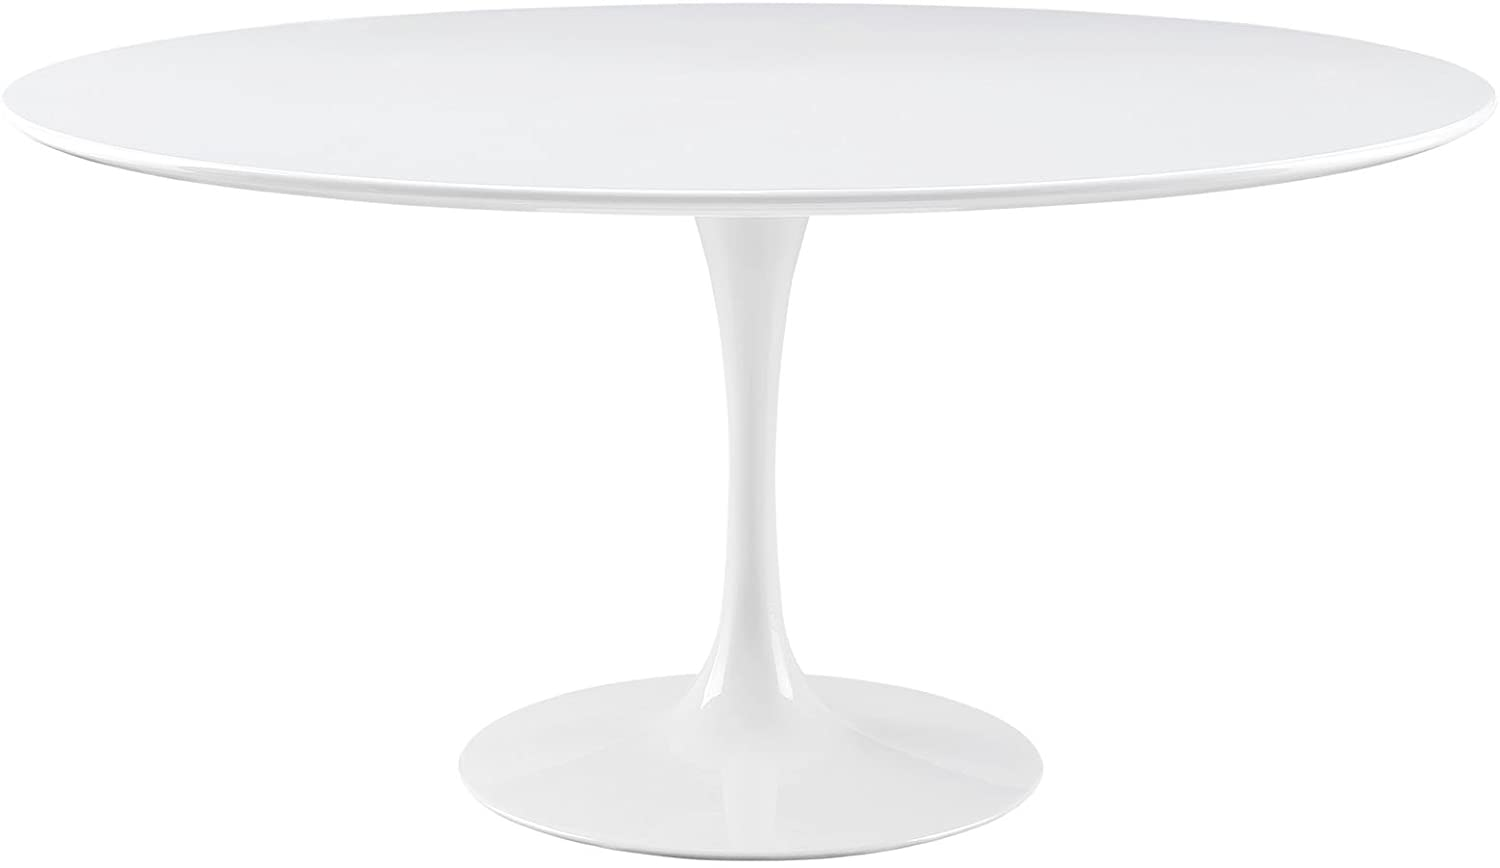 "Modway Lippa 60"" Mid-Century Modern Kitchen and Dining Table with Round Top and Pedestal Base in White"